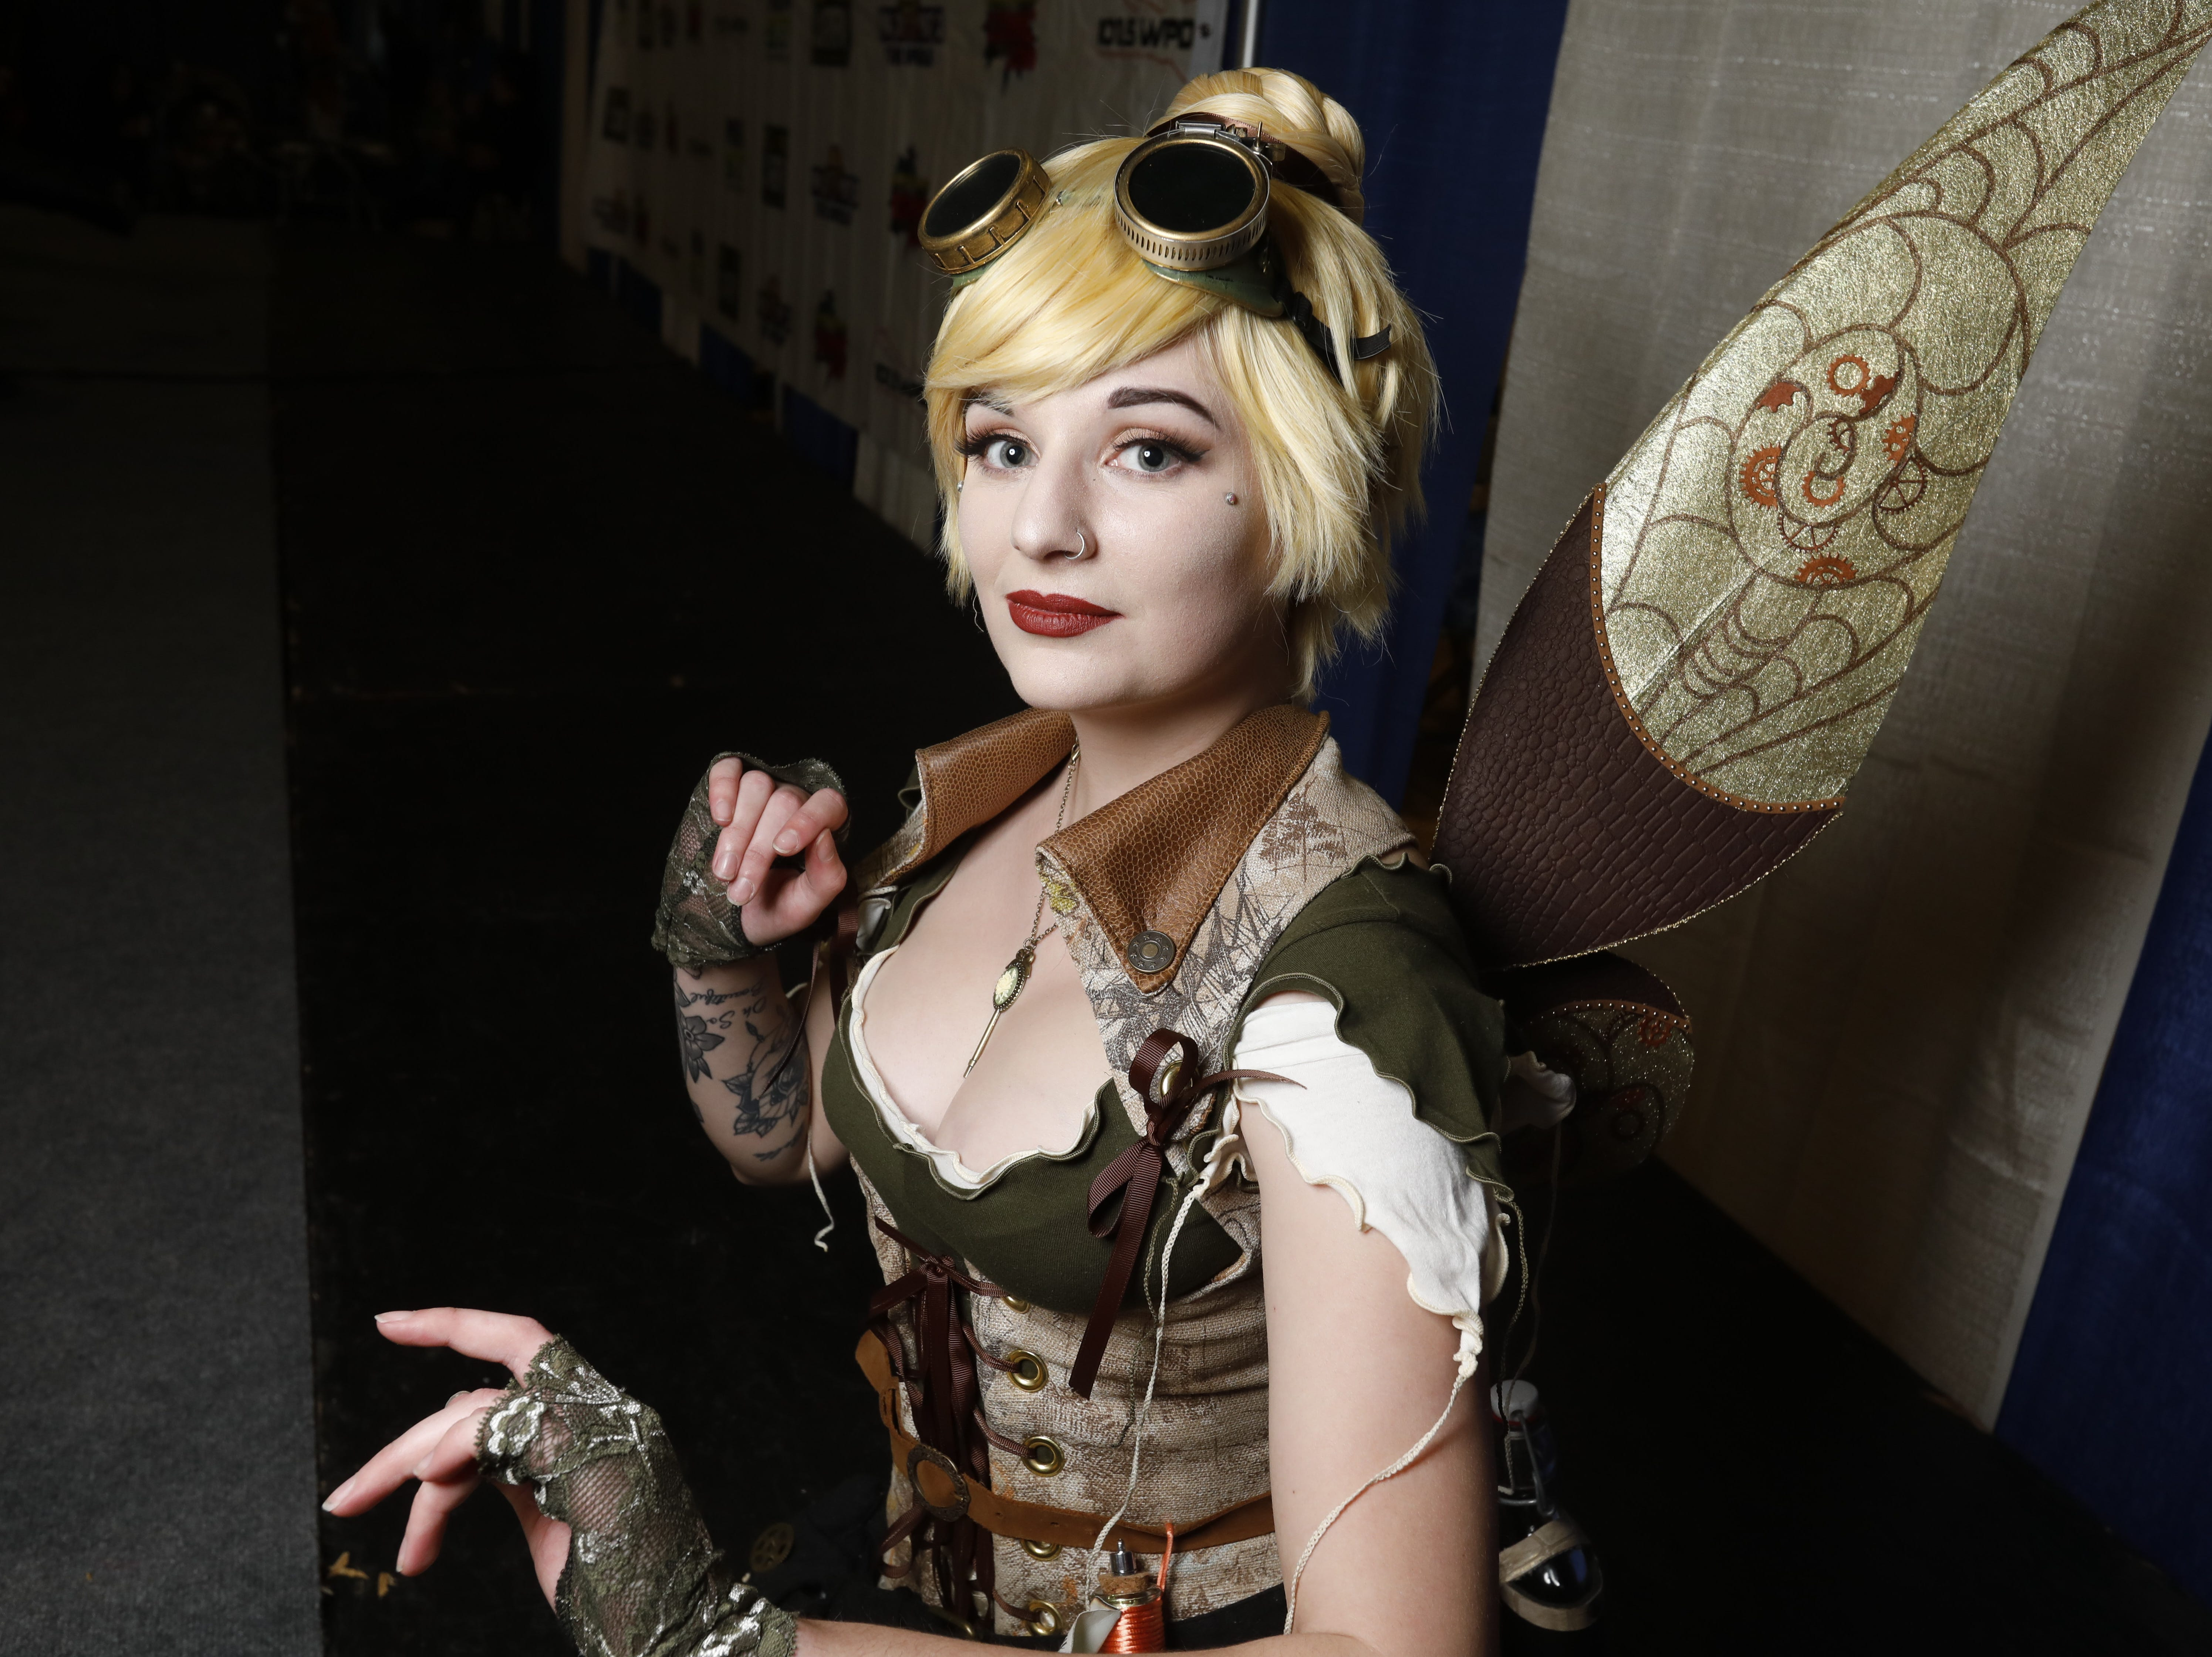 Hundreds of people attended the Hudson Valley Comic Con at the Gold's Gym and Exhibition Center in Poughkeepsie on April 21, 2018.  The 2 day event includes  a costume contest, vendor booths and forums.